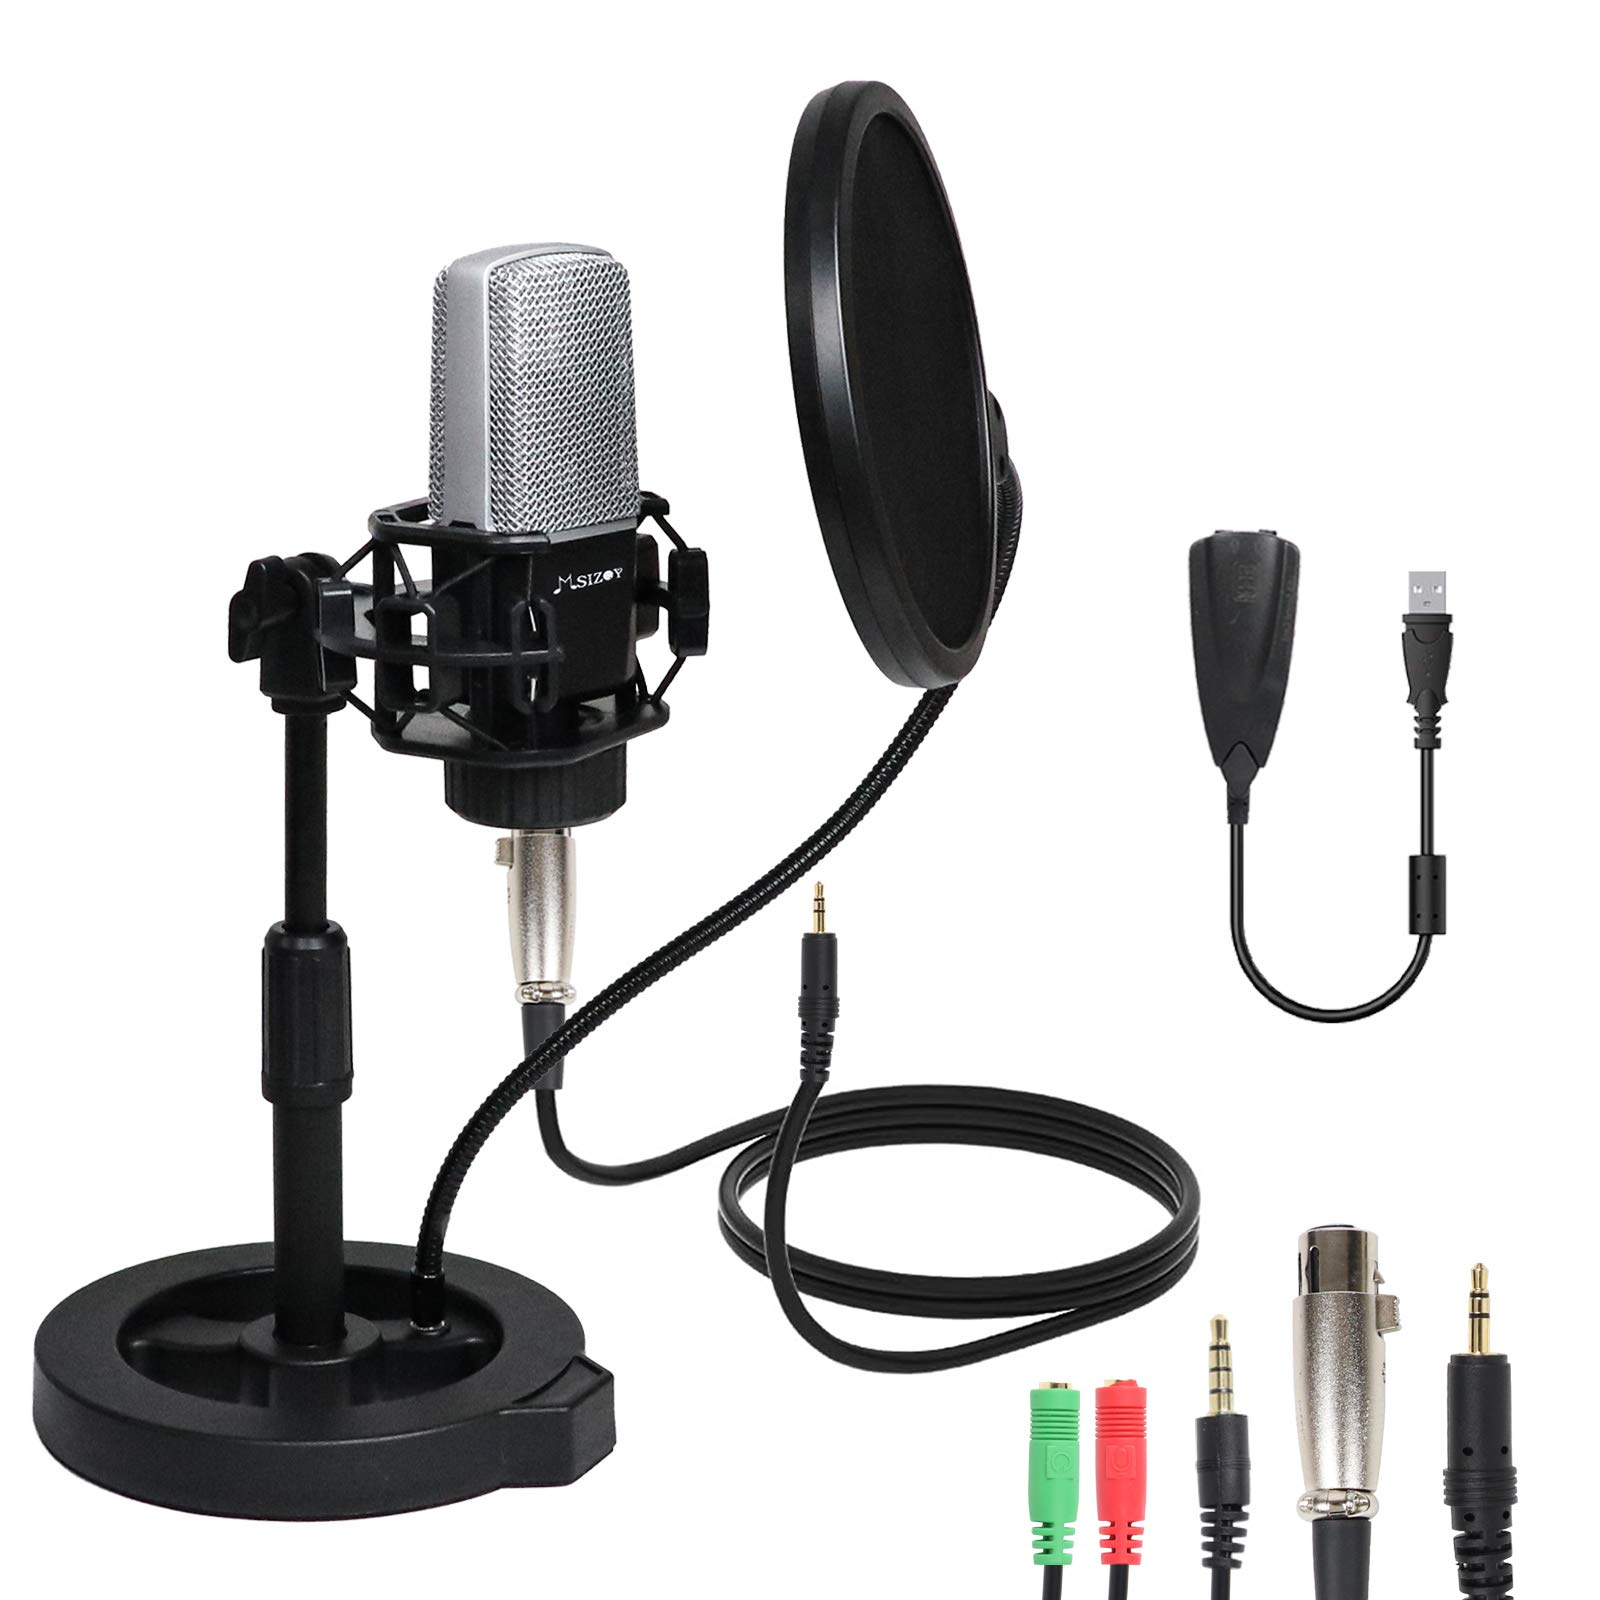 MSIZOY 3.5mm Condenser Microphone Kit,Professional Studio Condenser Mic with Shock Mount/Pop Filter/USB Sound Card for Recording,Podcasting,Gaming,etc. (3.5mm Microphone)